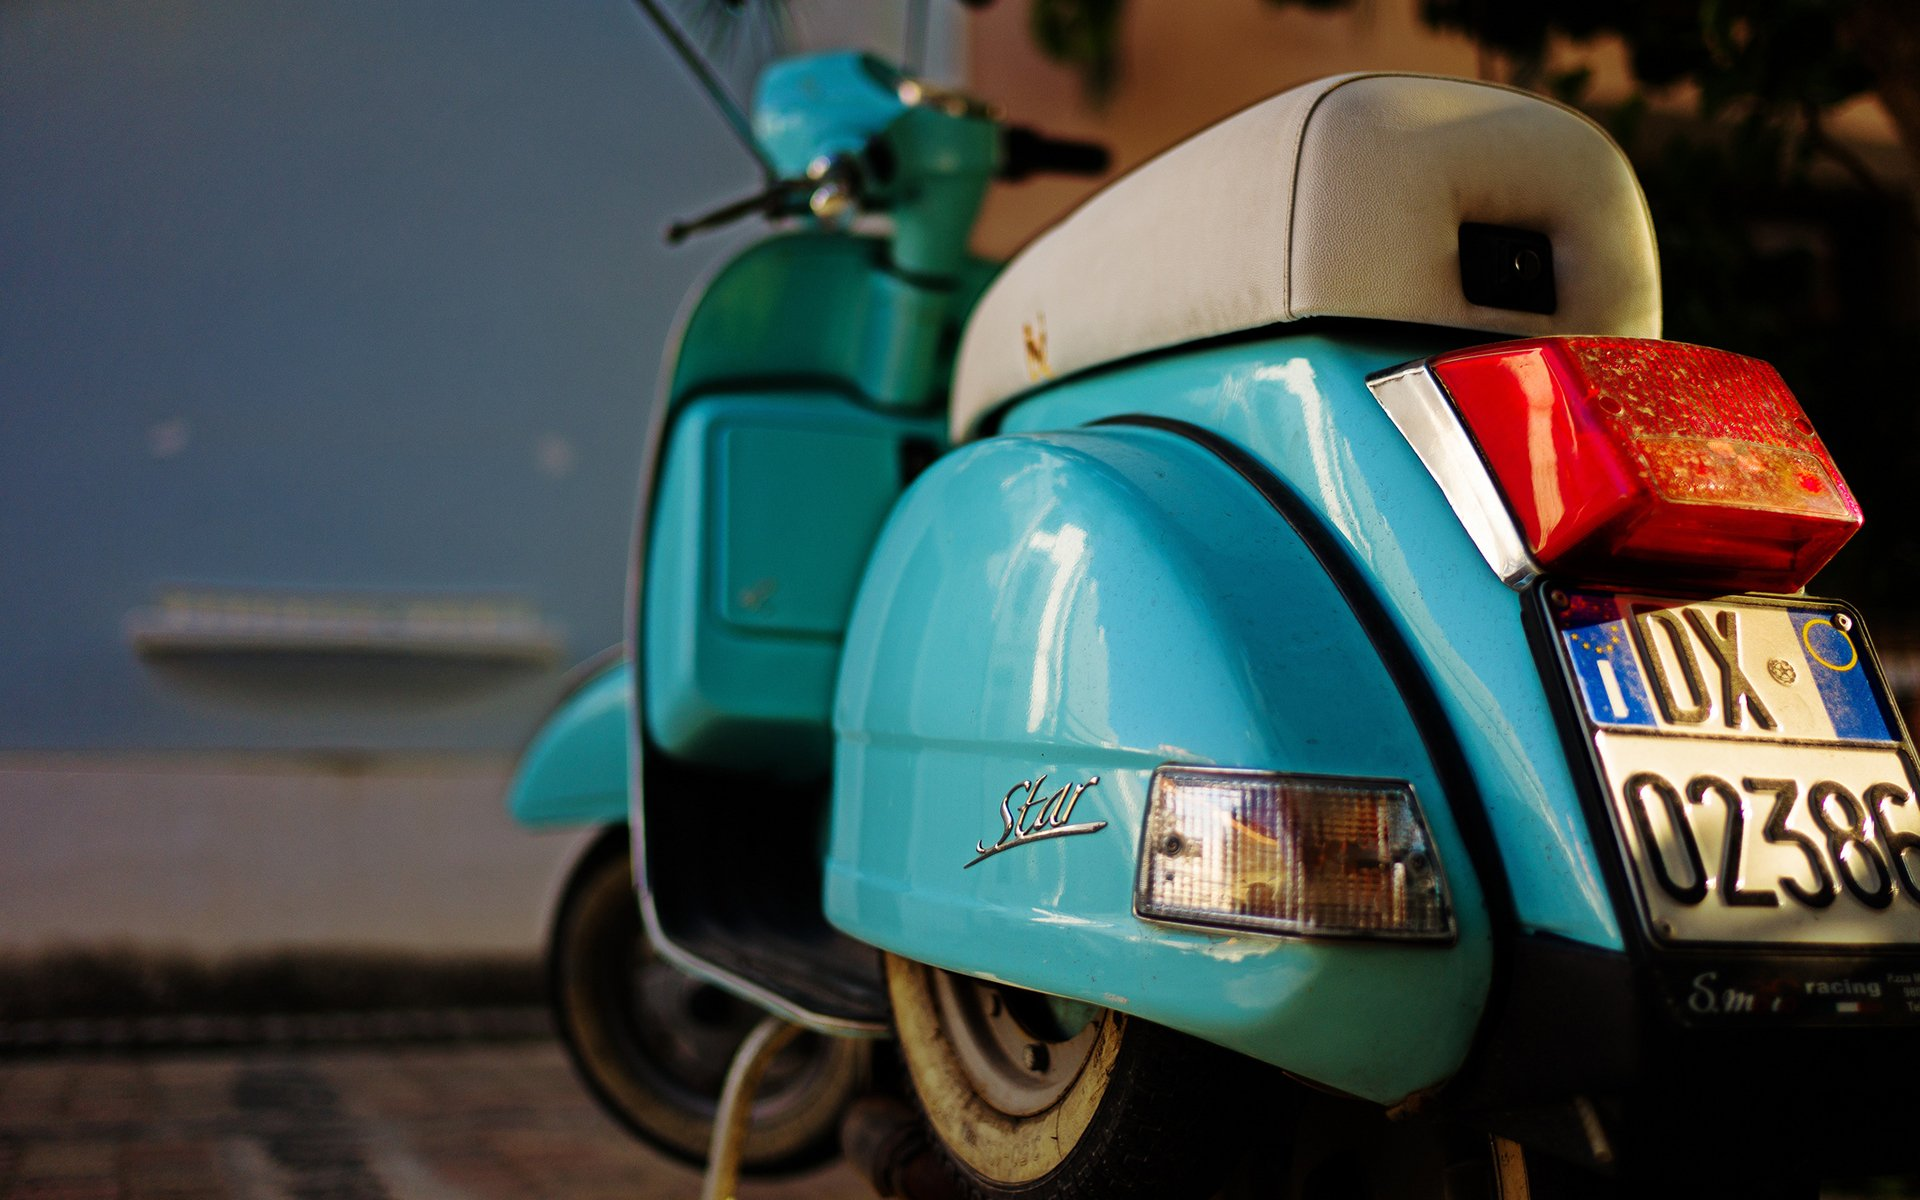 scooter widescreen computer wallpaper 566